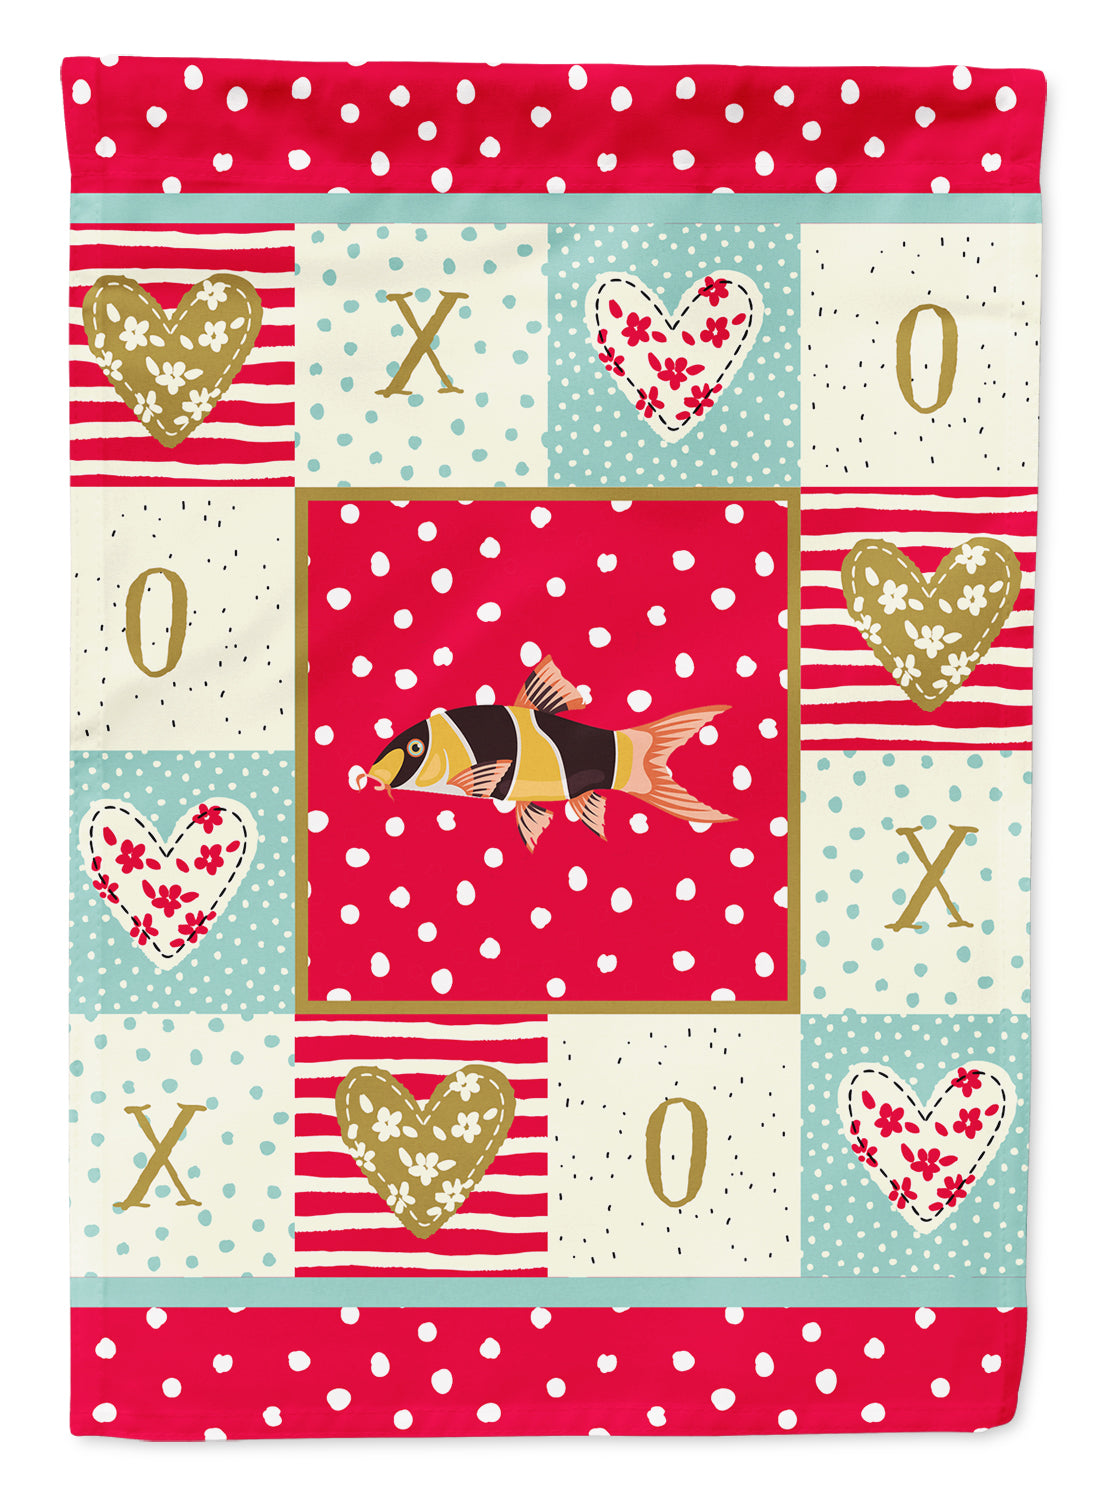 Clown Loach Fish Love Flag Canvas House Size CK5467CHF by Caroline's Treasures